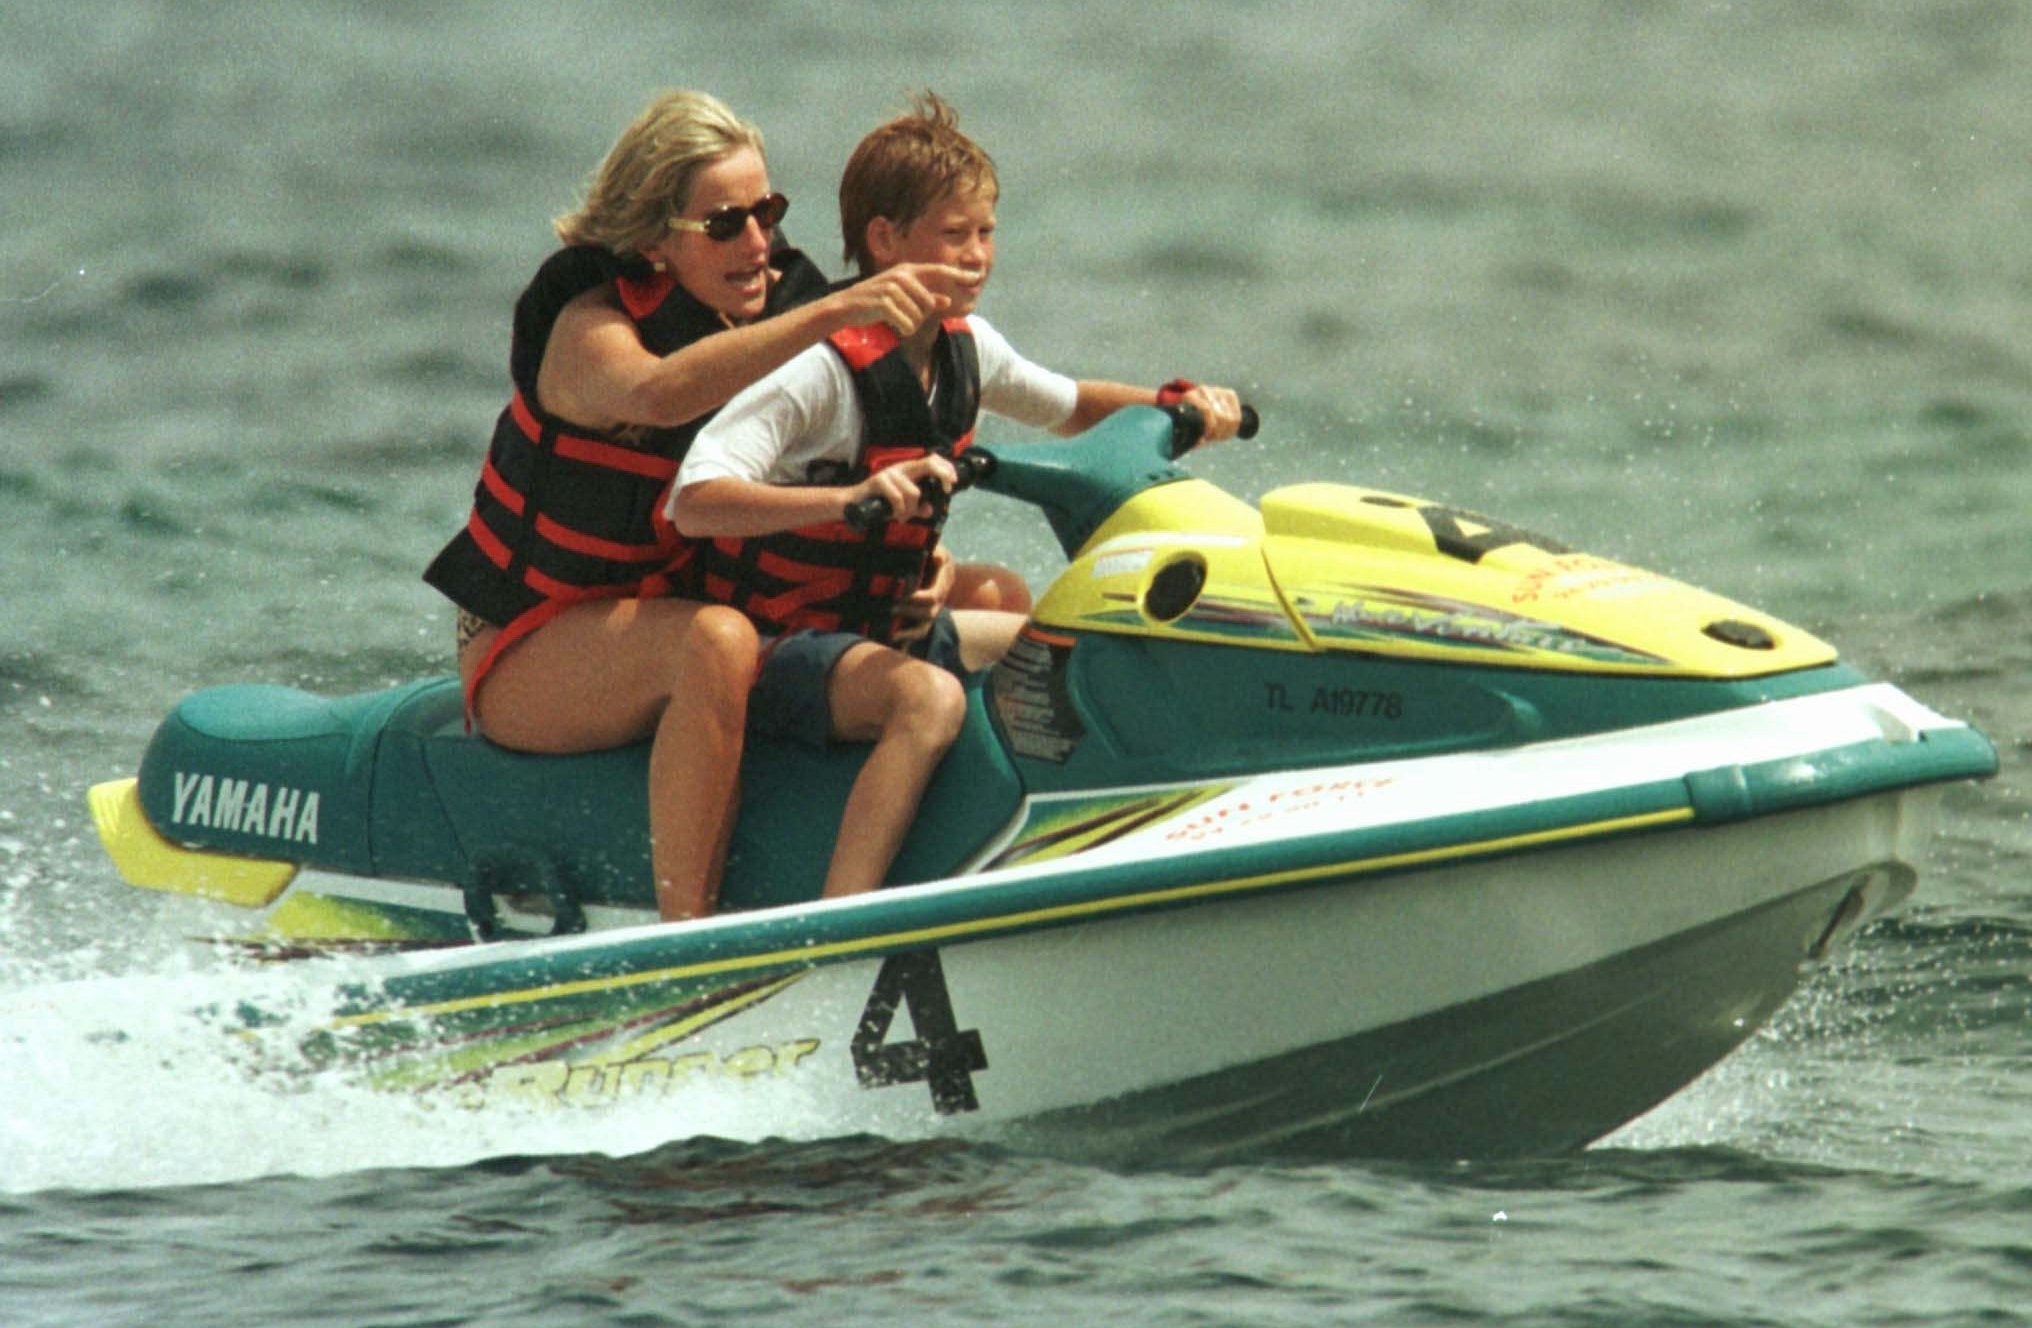 "FILE - In this Thursday July 17, 1997 file photo, Britain's Princess Diana rides a personal watercraft with her son Prince Harry, steering, in Saint Tropez, on the French Riviera, where she is spending a few days holidaying. It has been 20 years since the death of Princess Diana in a car crash in Paris and the outpouring of grief that followed the death of the ""people's princess."" (AP Photo/Lionel Cironneau, File)"